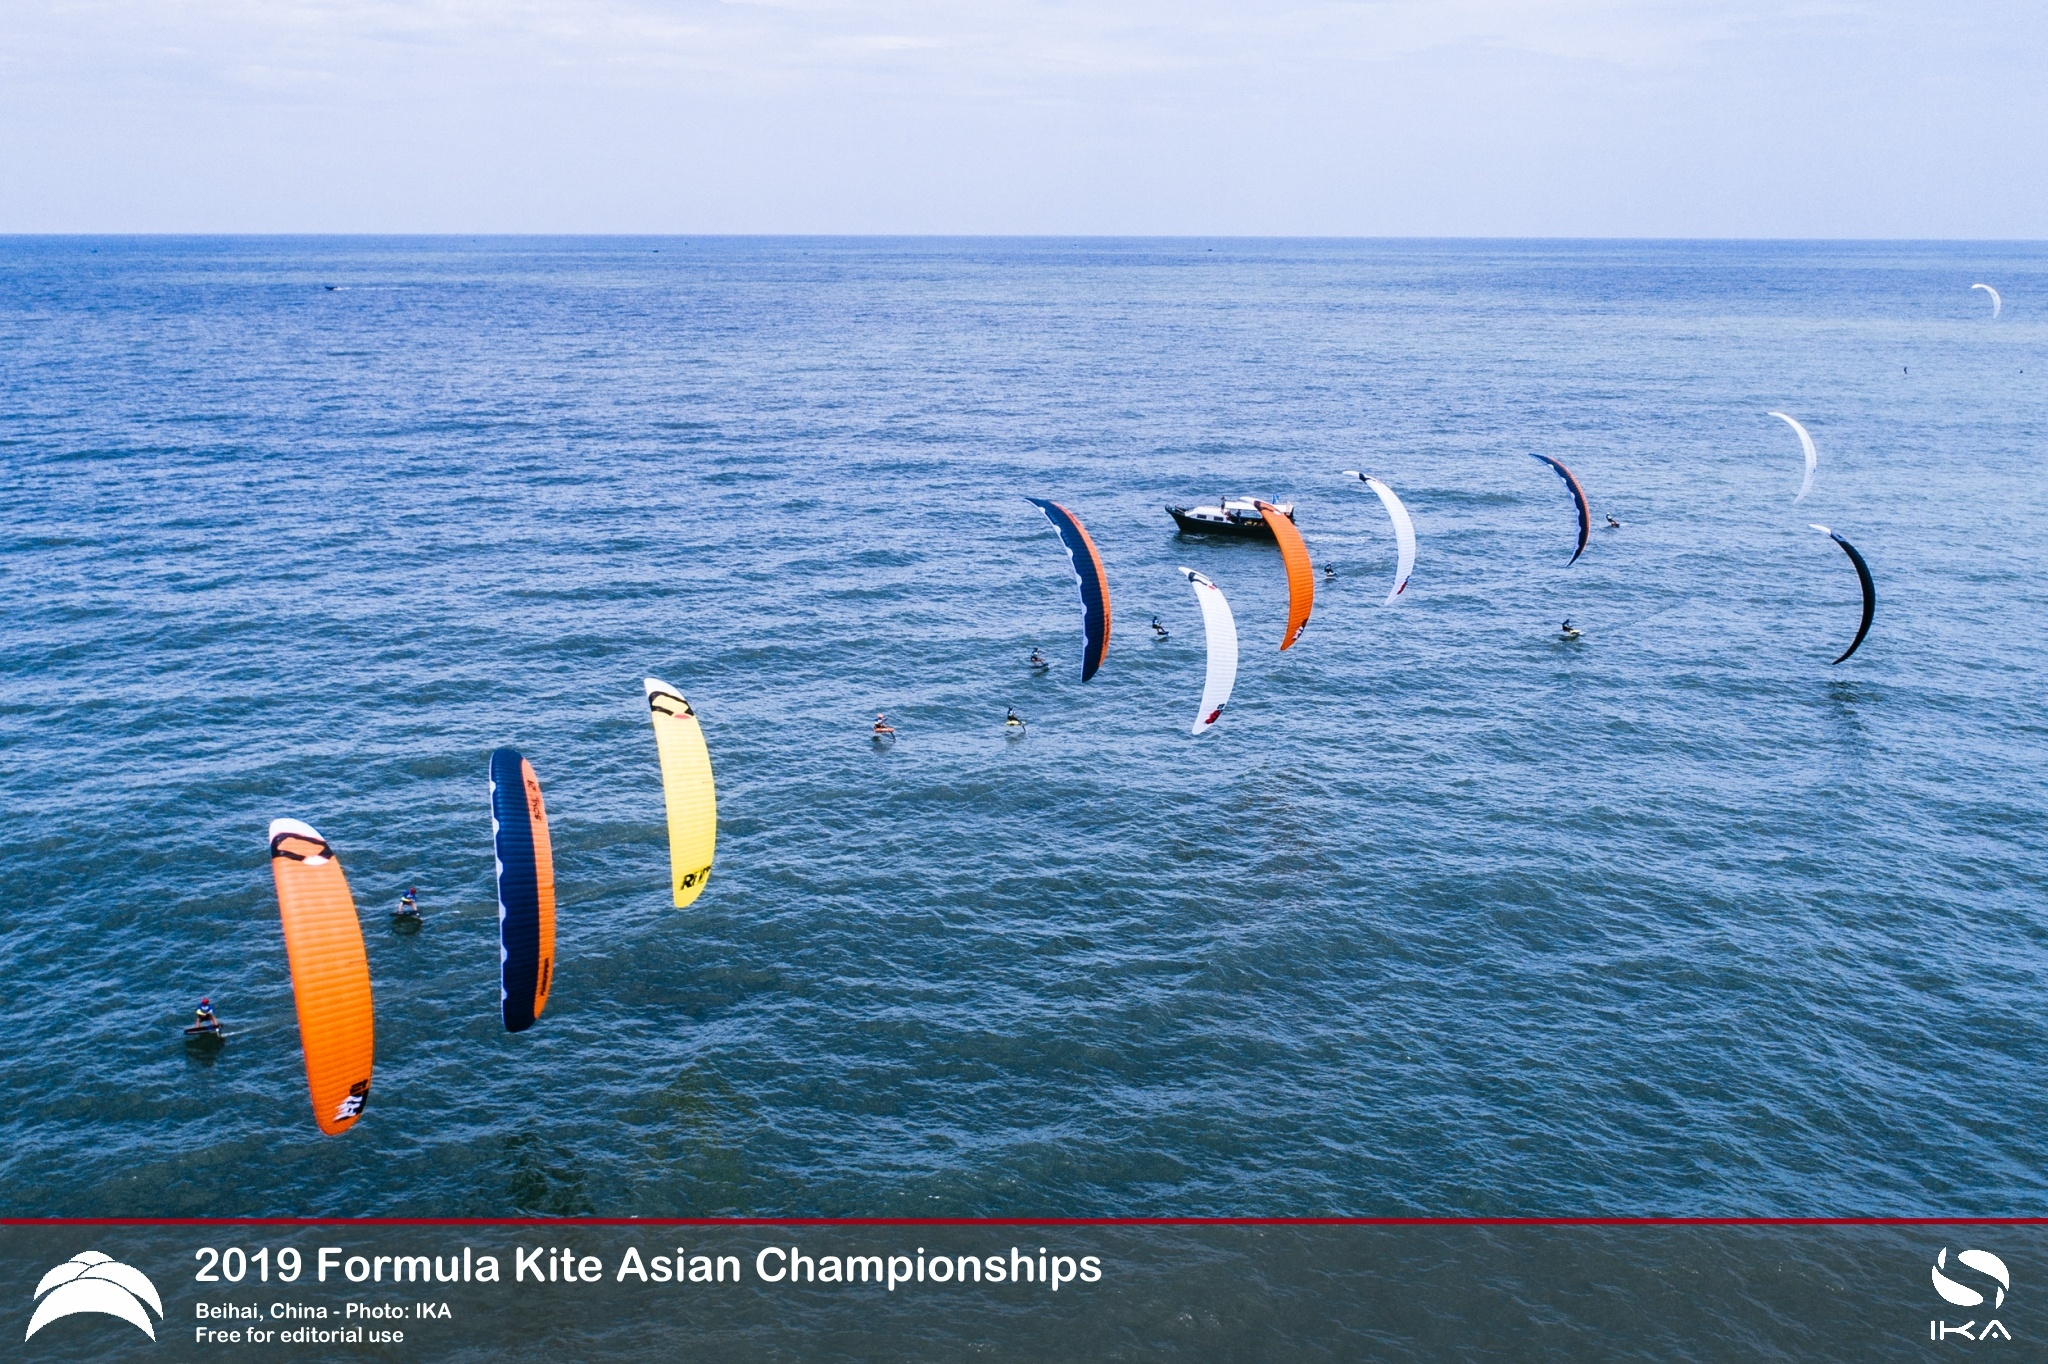 Polish Teenagers Surge to Top of Order in Tough Conditions at Formula Kite Asians